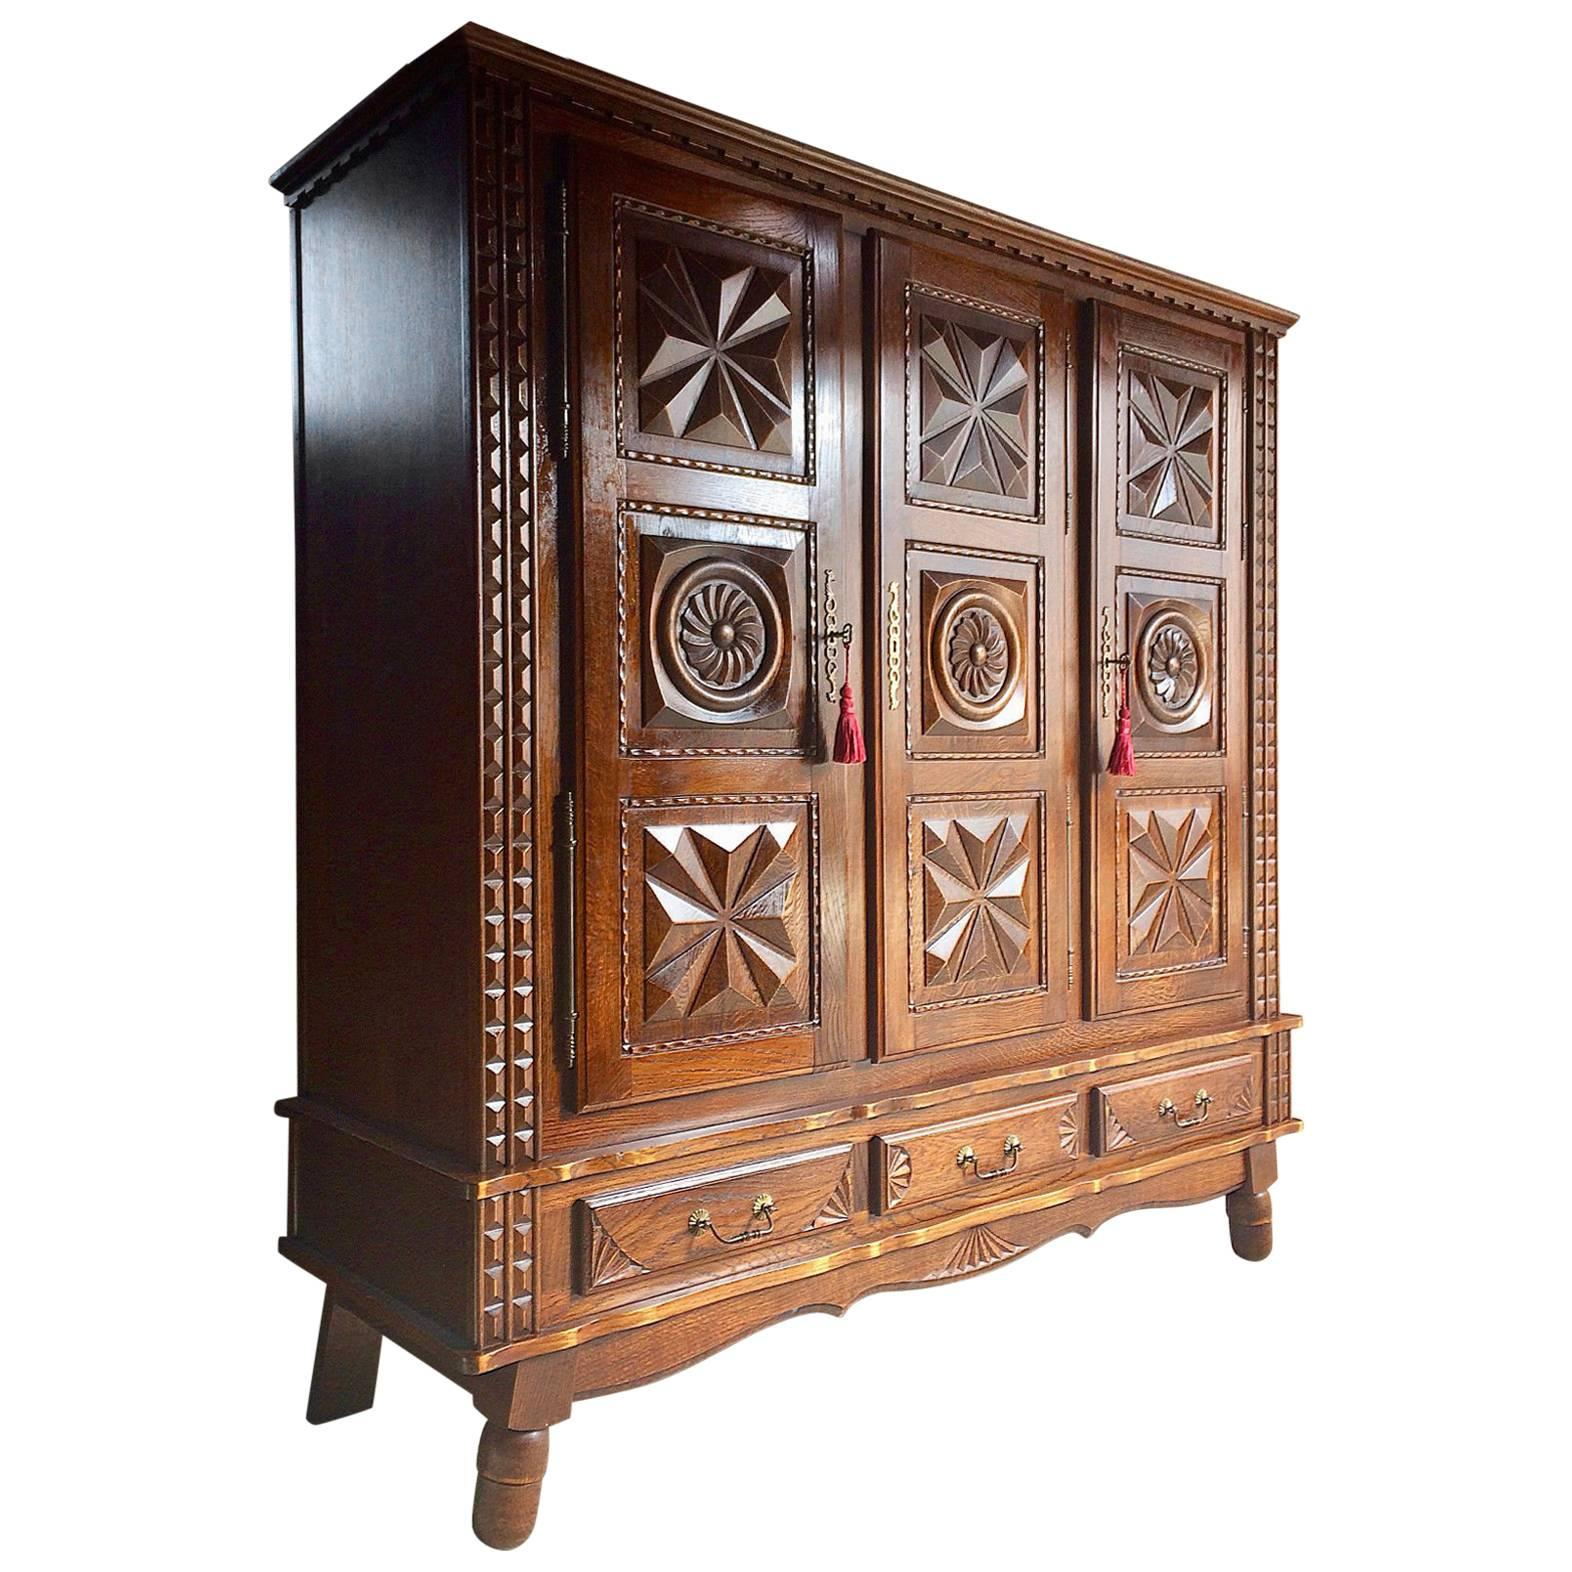 Antique Style French Oak Armoire Wardrobe Large Carved Bedside Cabinet.  Pine Single Door Armoire